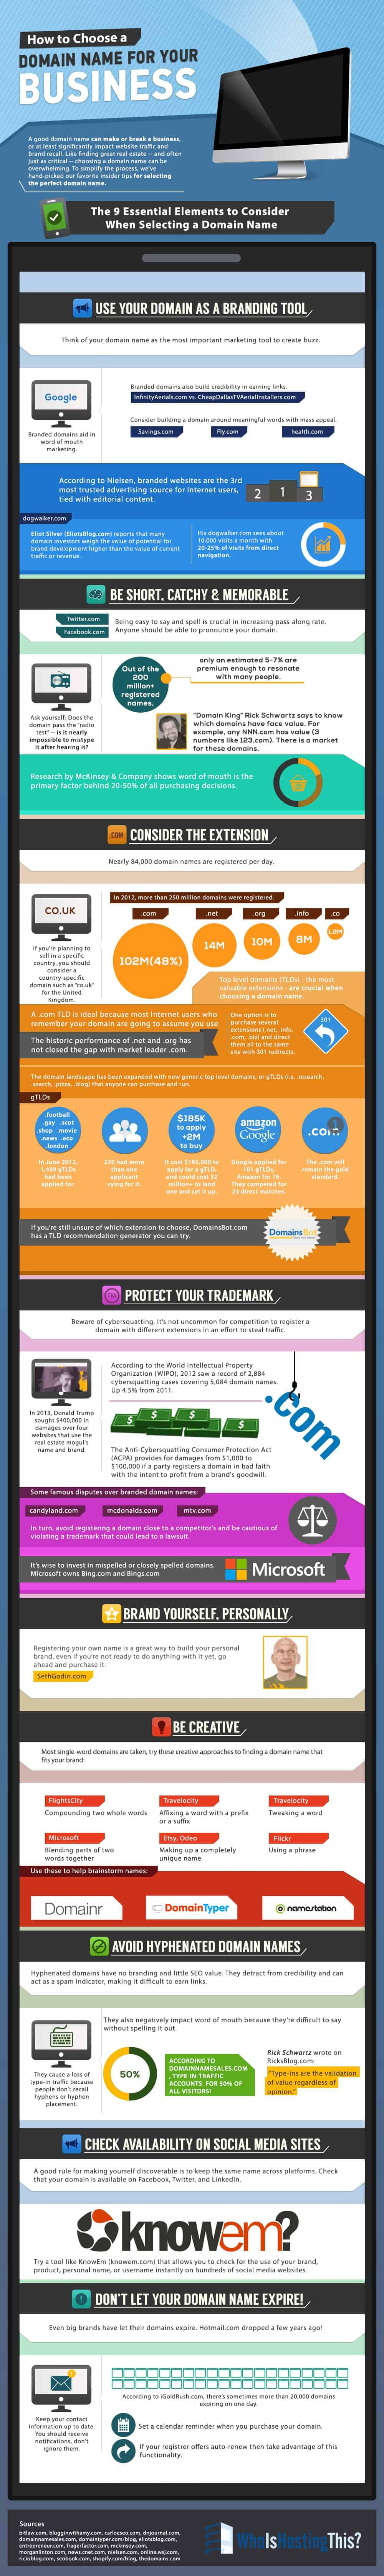 How to Choose a Best Domain Name For Your New Business - #infographic